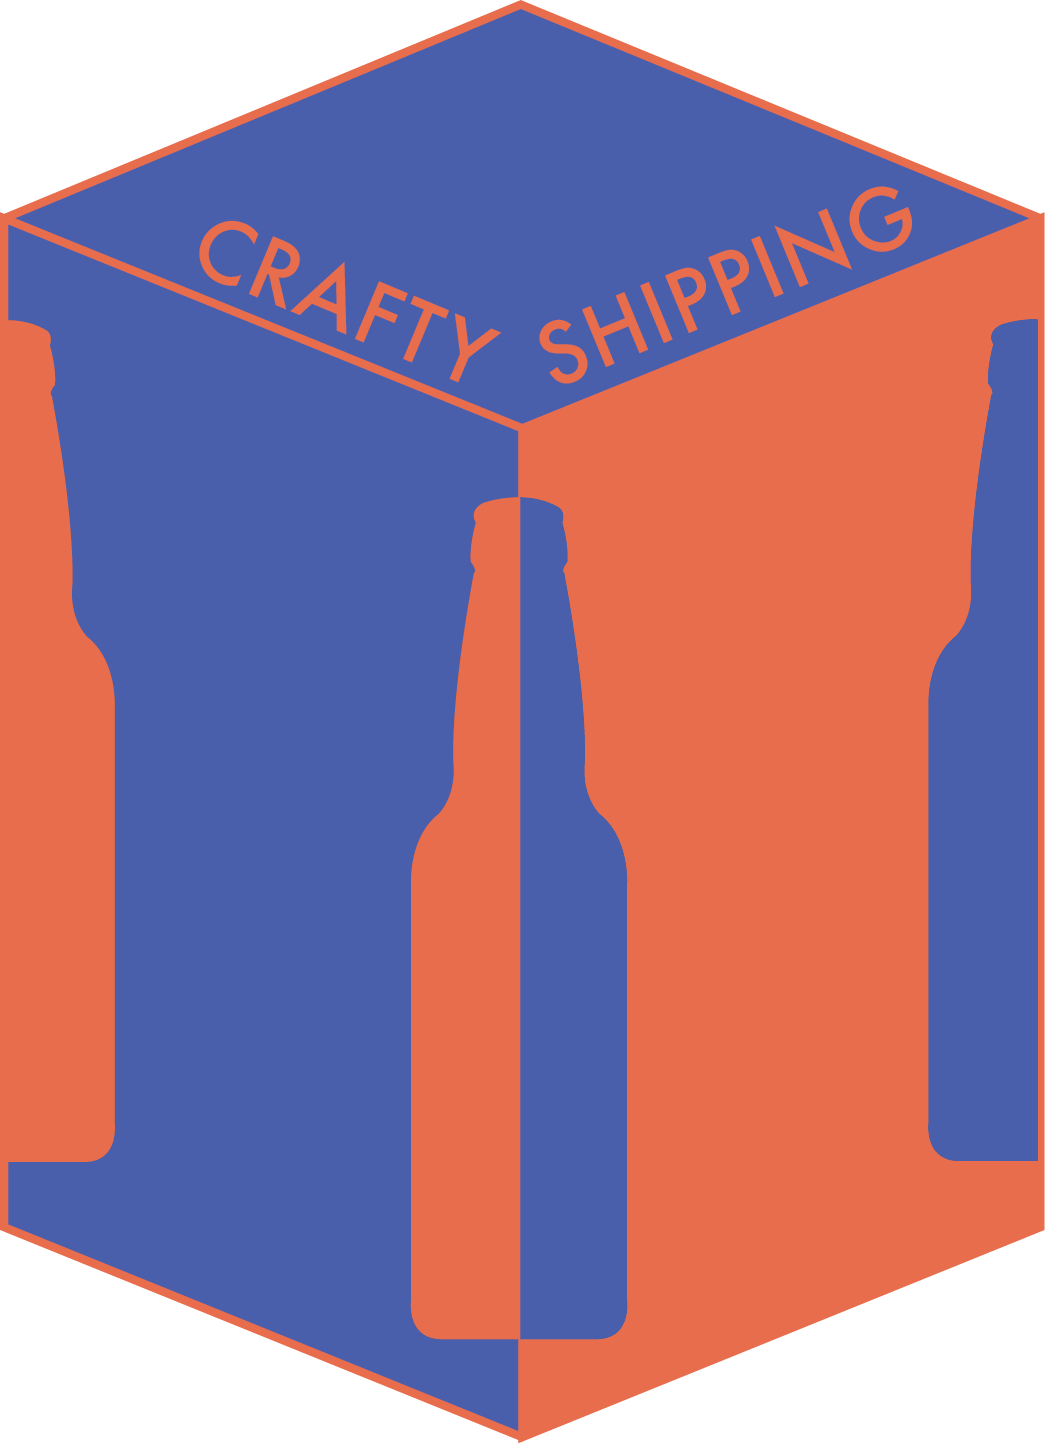 Crafty Shipping logo_draft 1.png